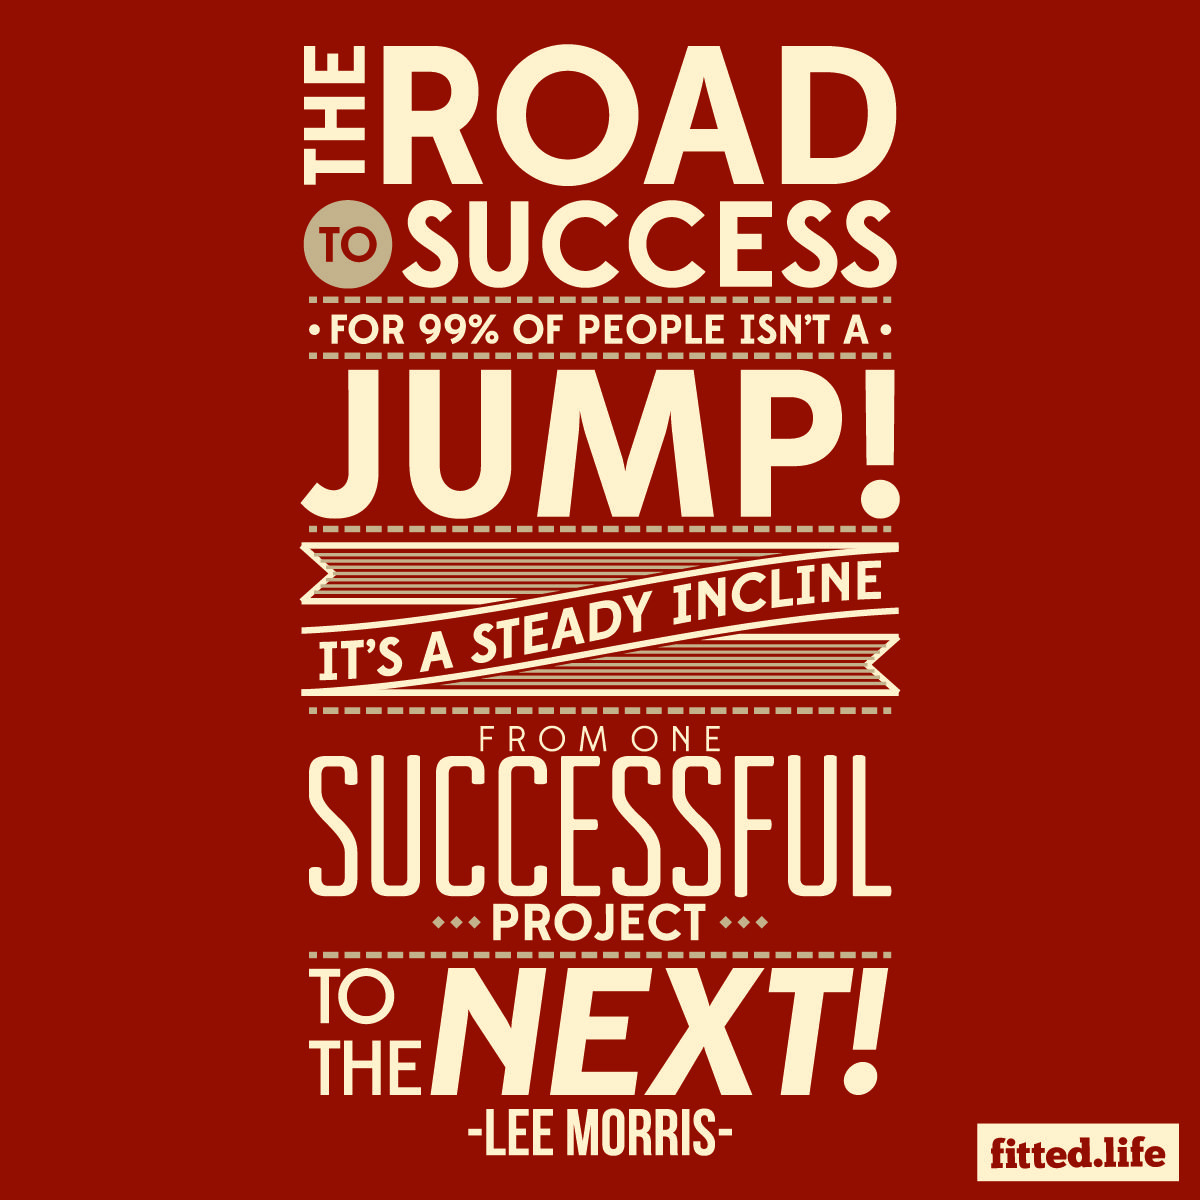 Road To Success Quotes The Road To Success For 99% Of People Isn't A Jump It's A Steady